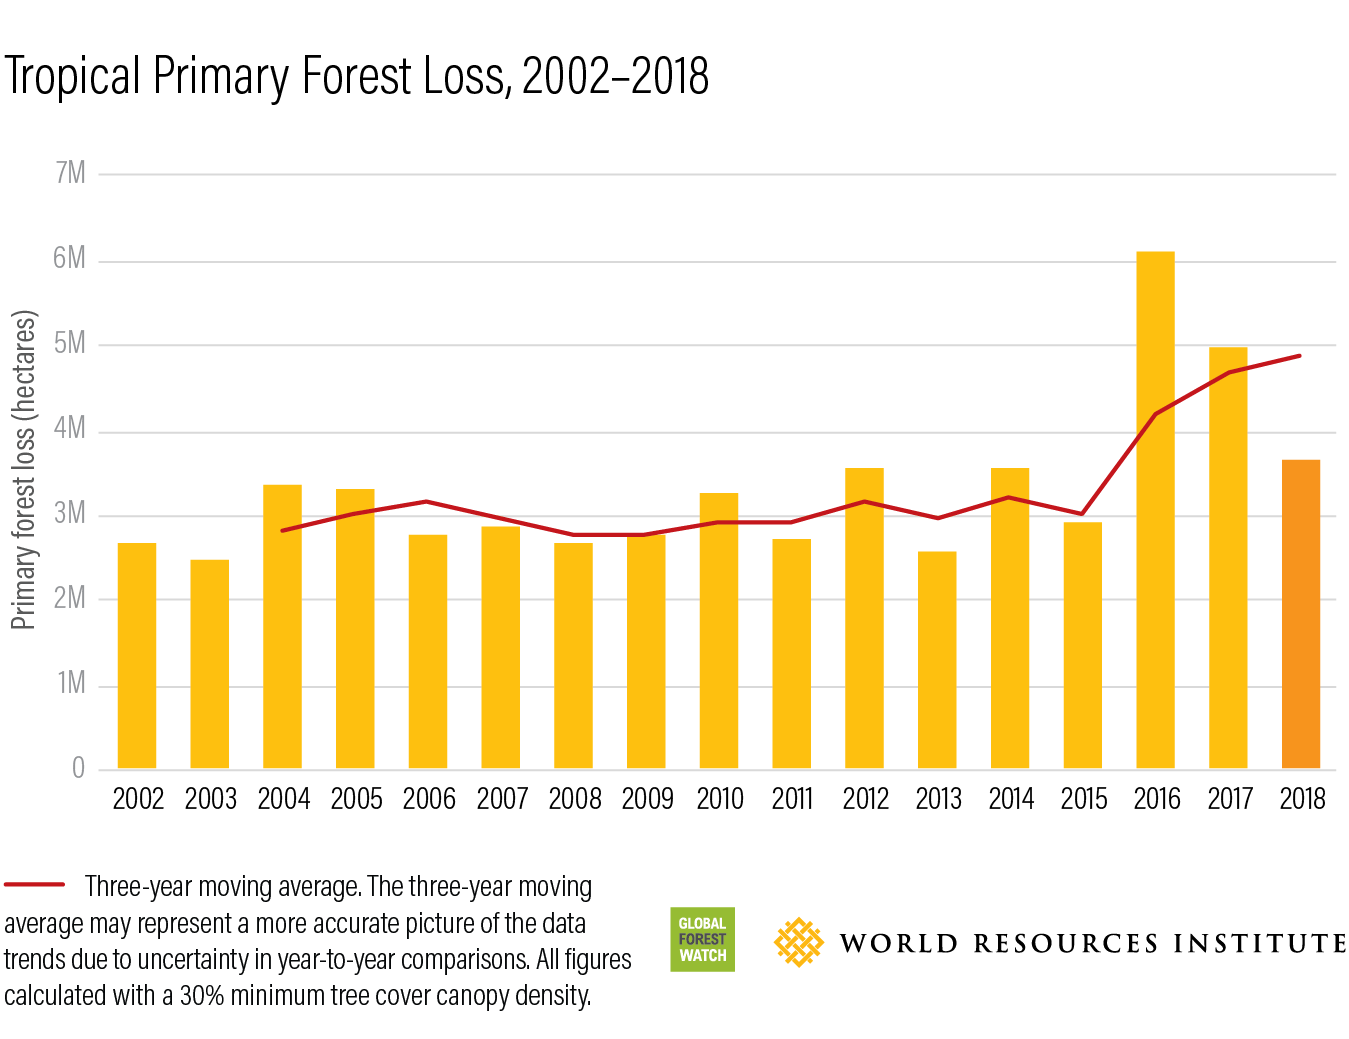 Tropical Primary Forest Loss